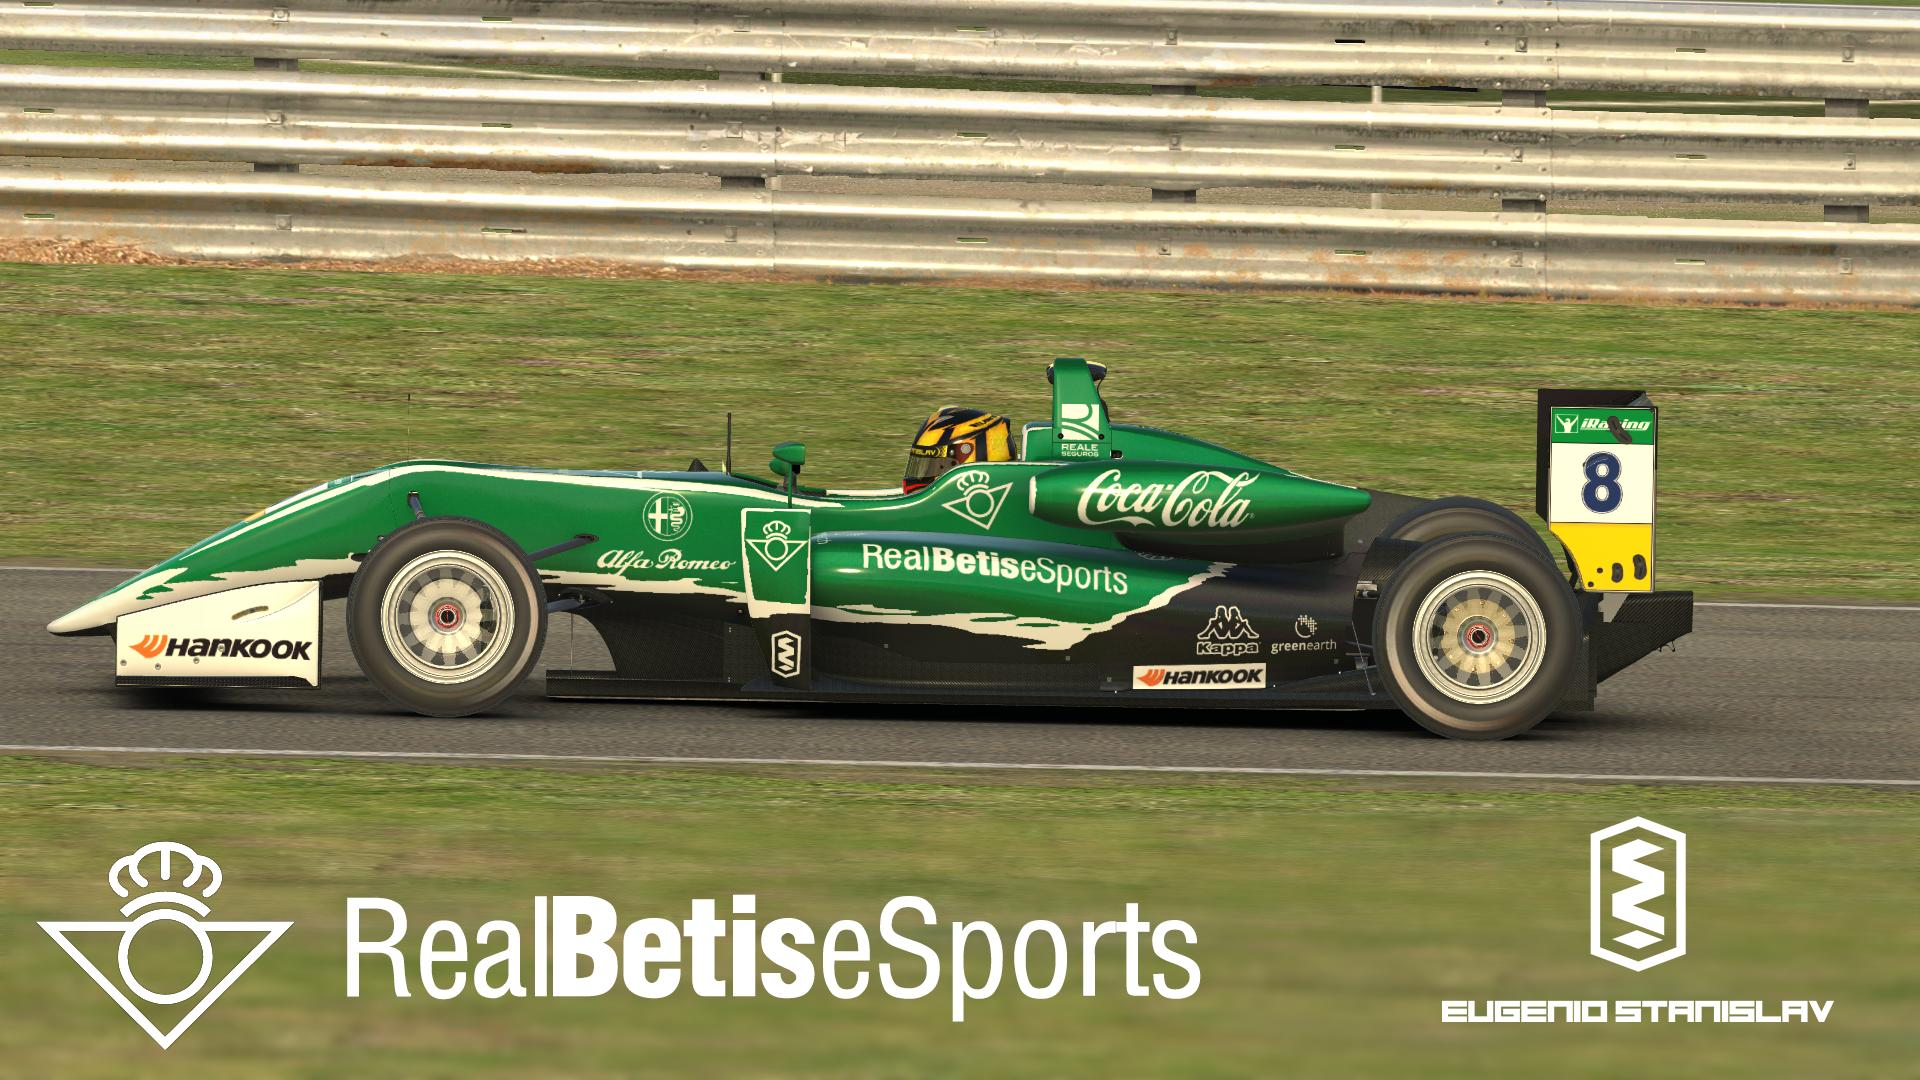 Preview of Dalara F3 - Real Betis eSports  by Eugenio Stanislav